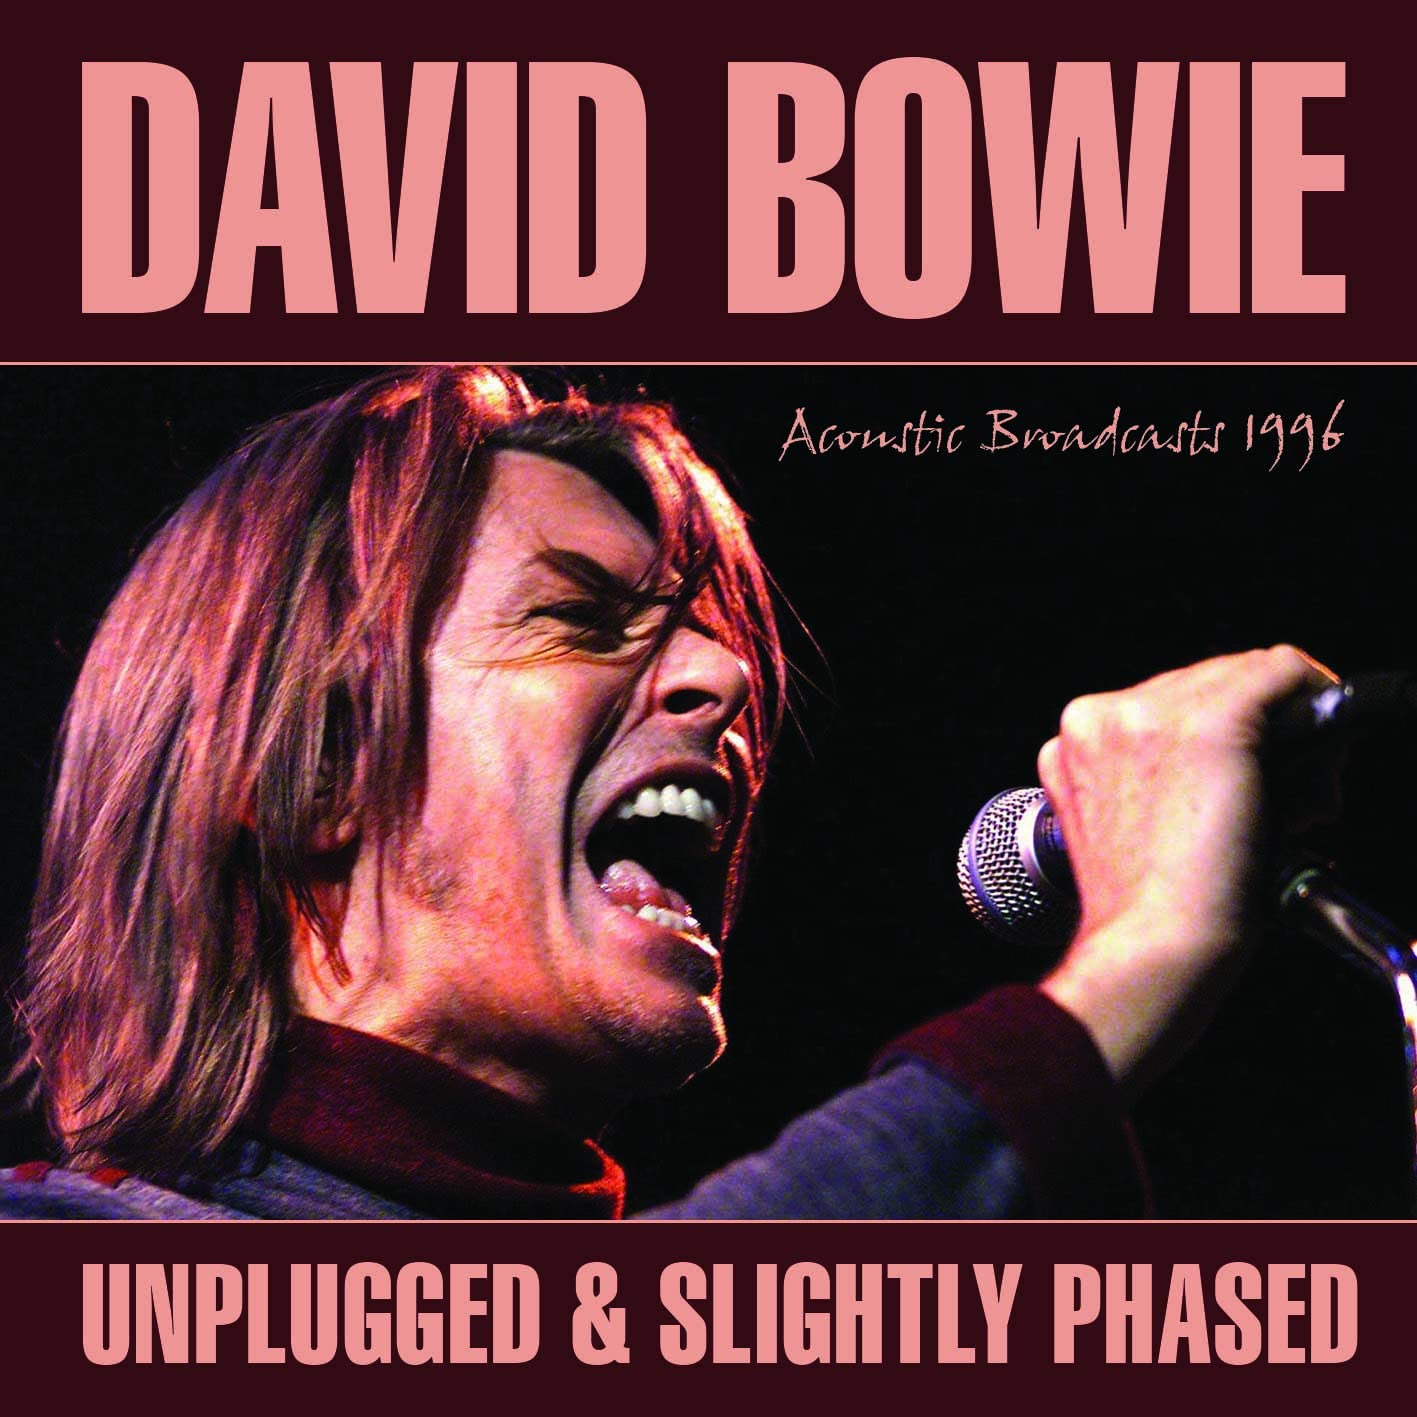 David Bowie - Unplugged & Slightly Phased [2xLP]